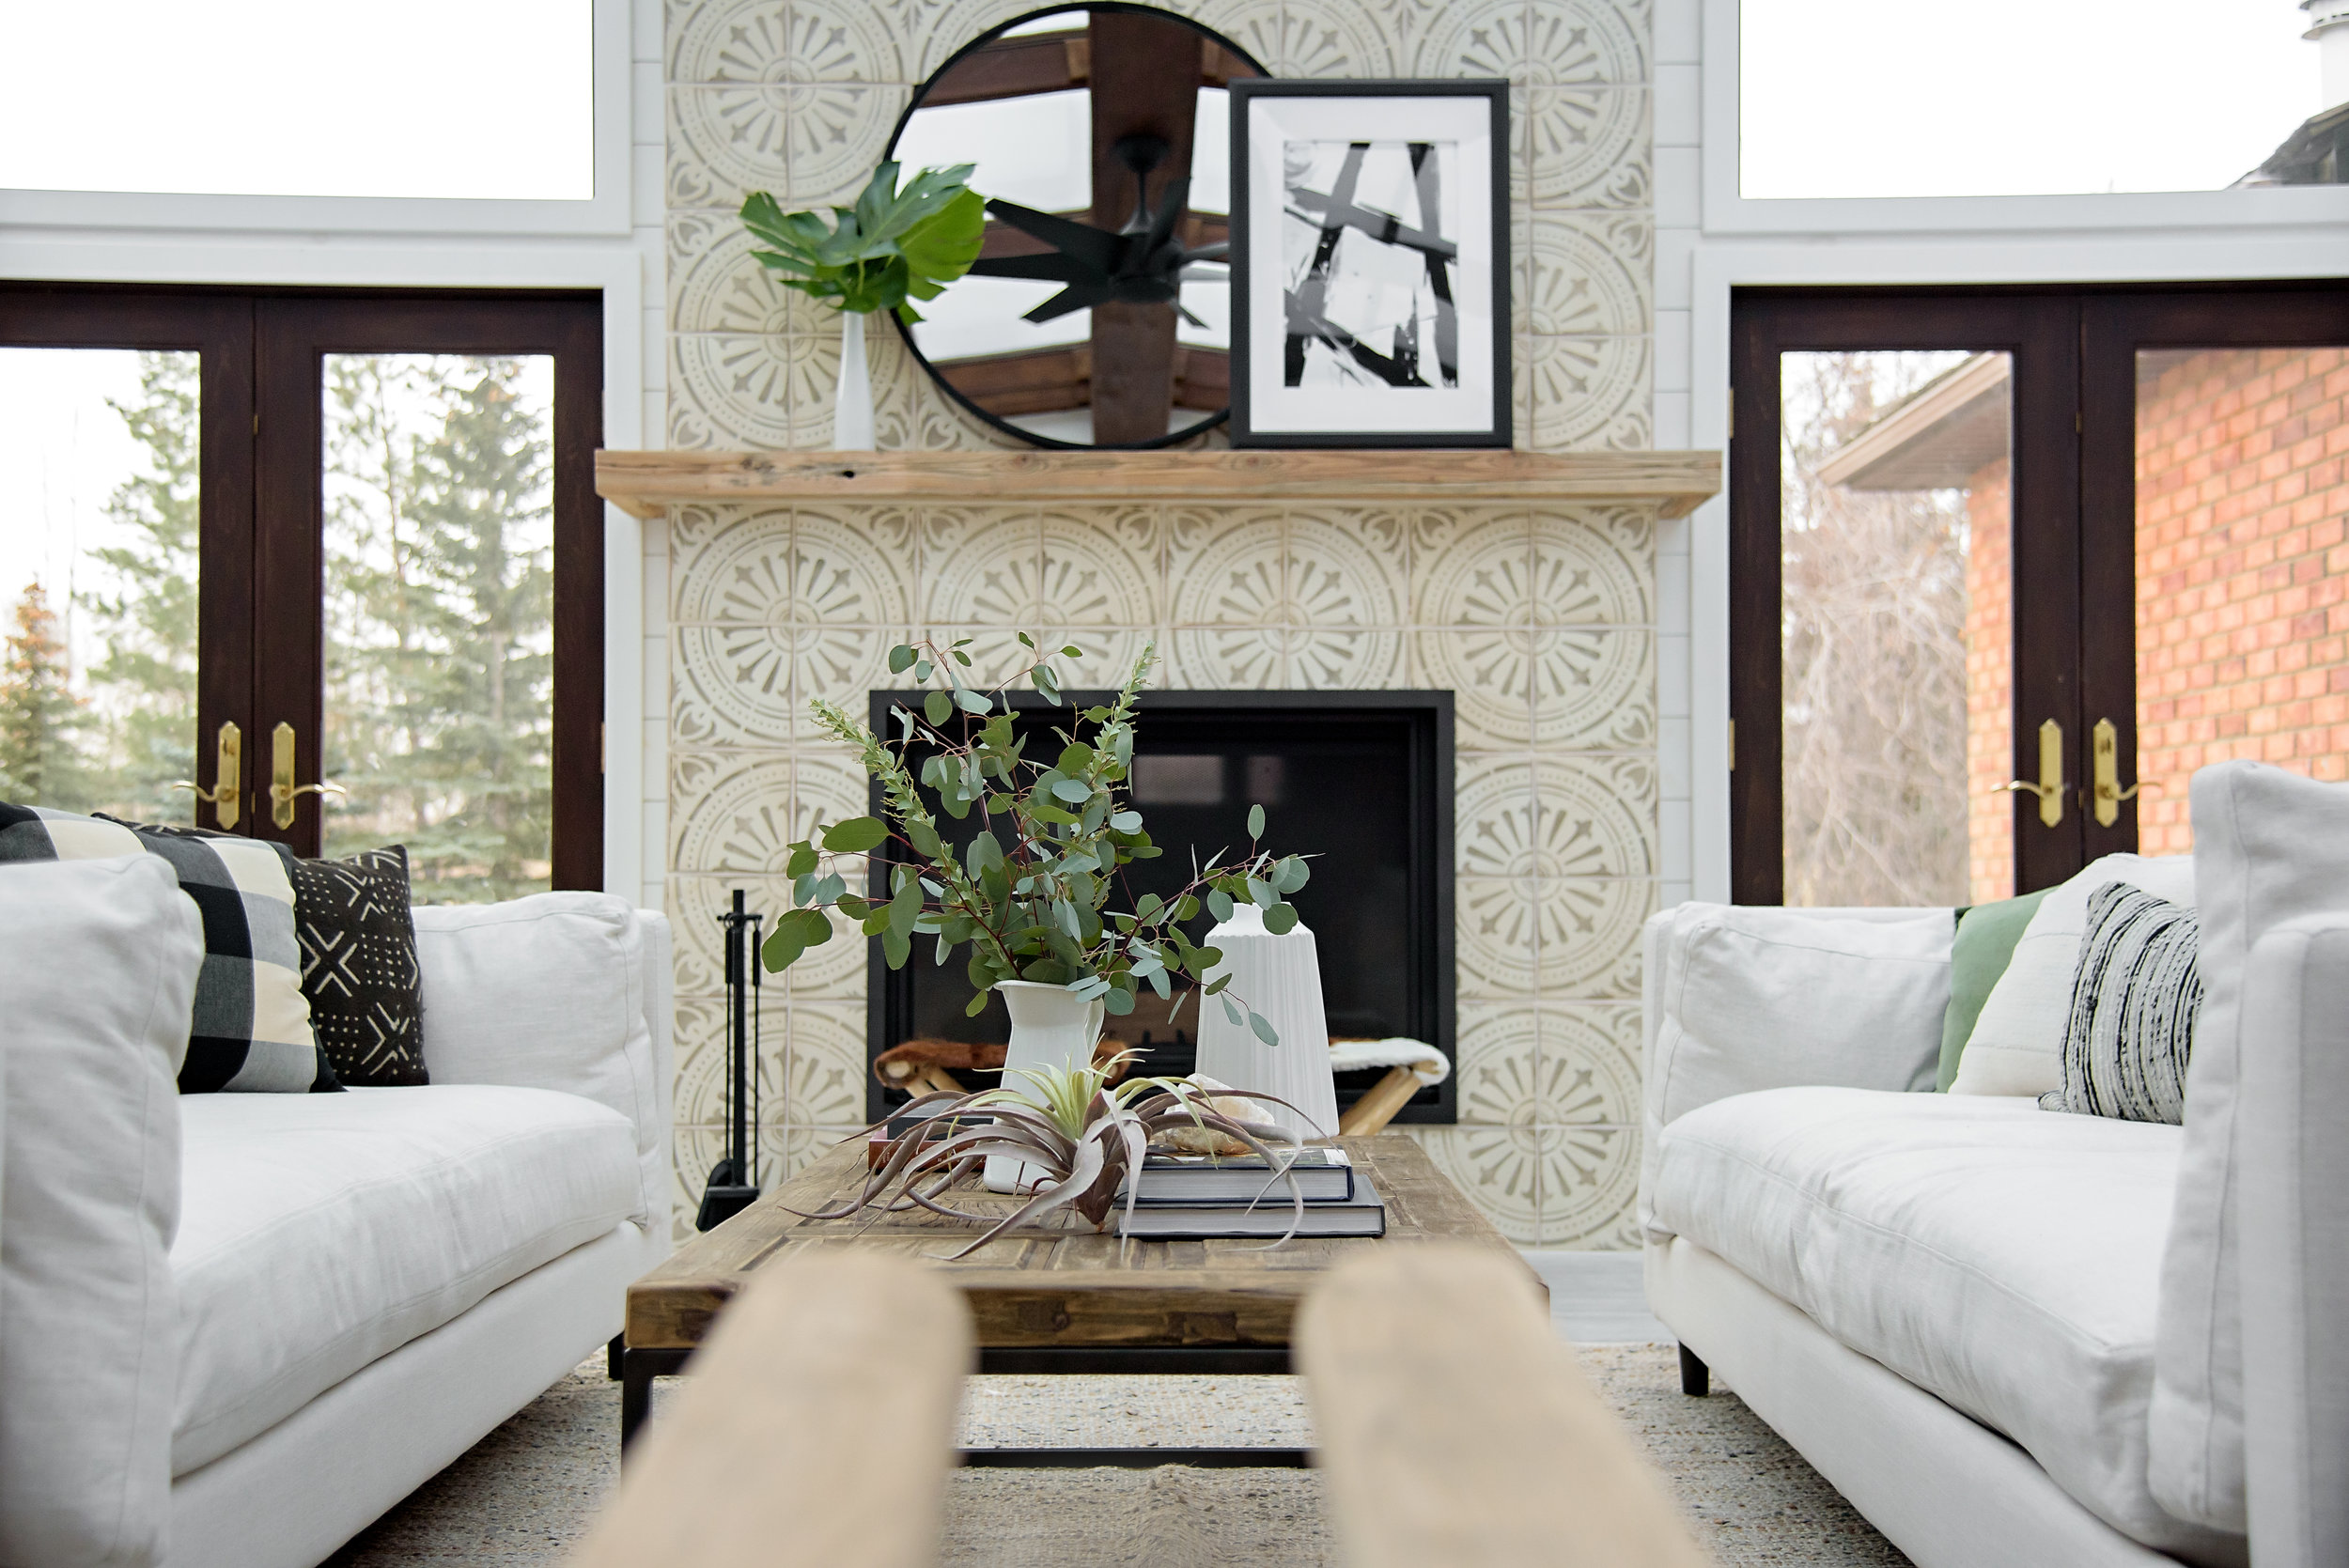 Enjoy every inch of your home: The Sunroom Project